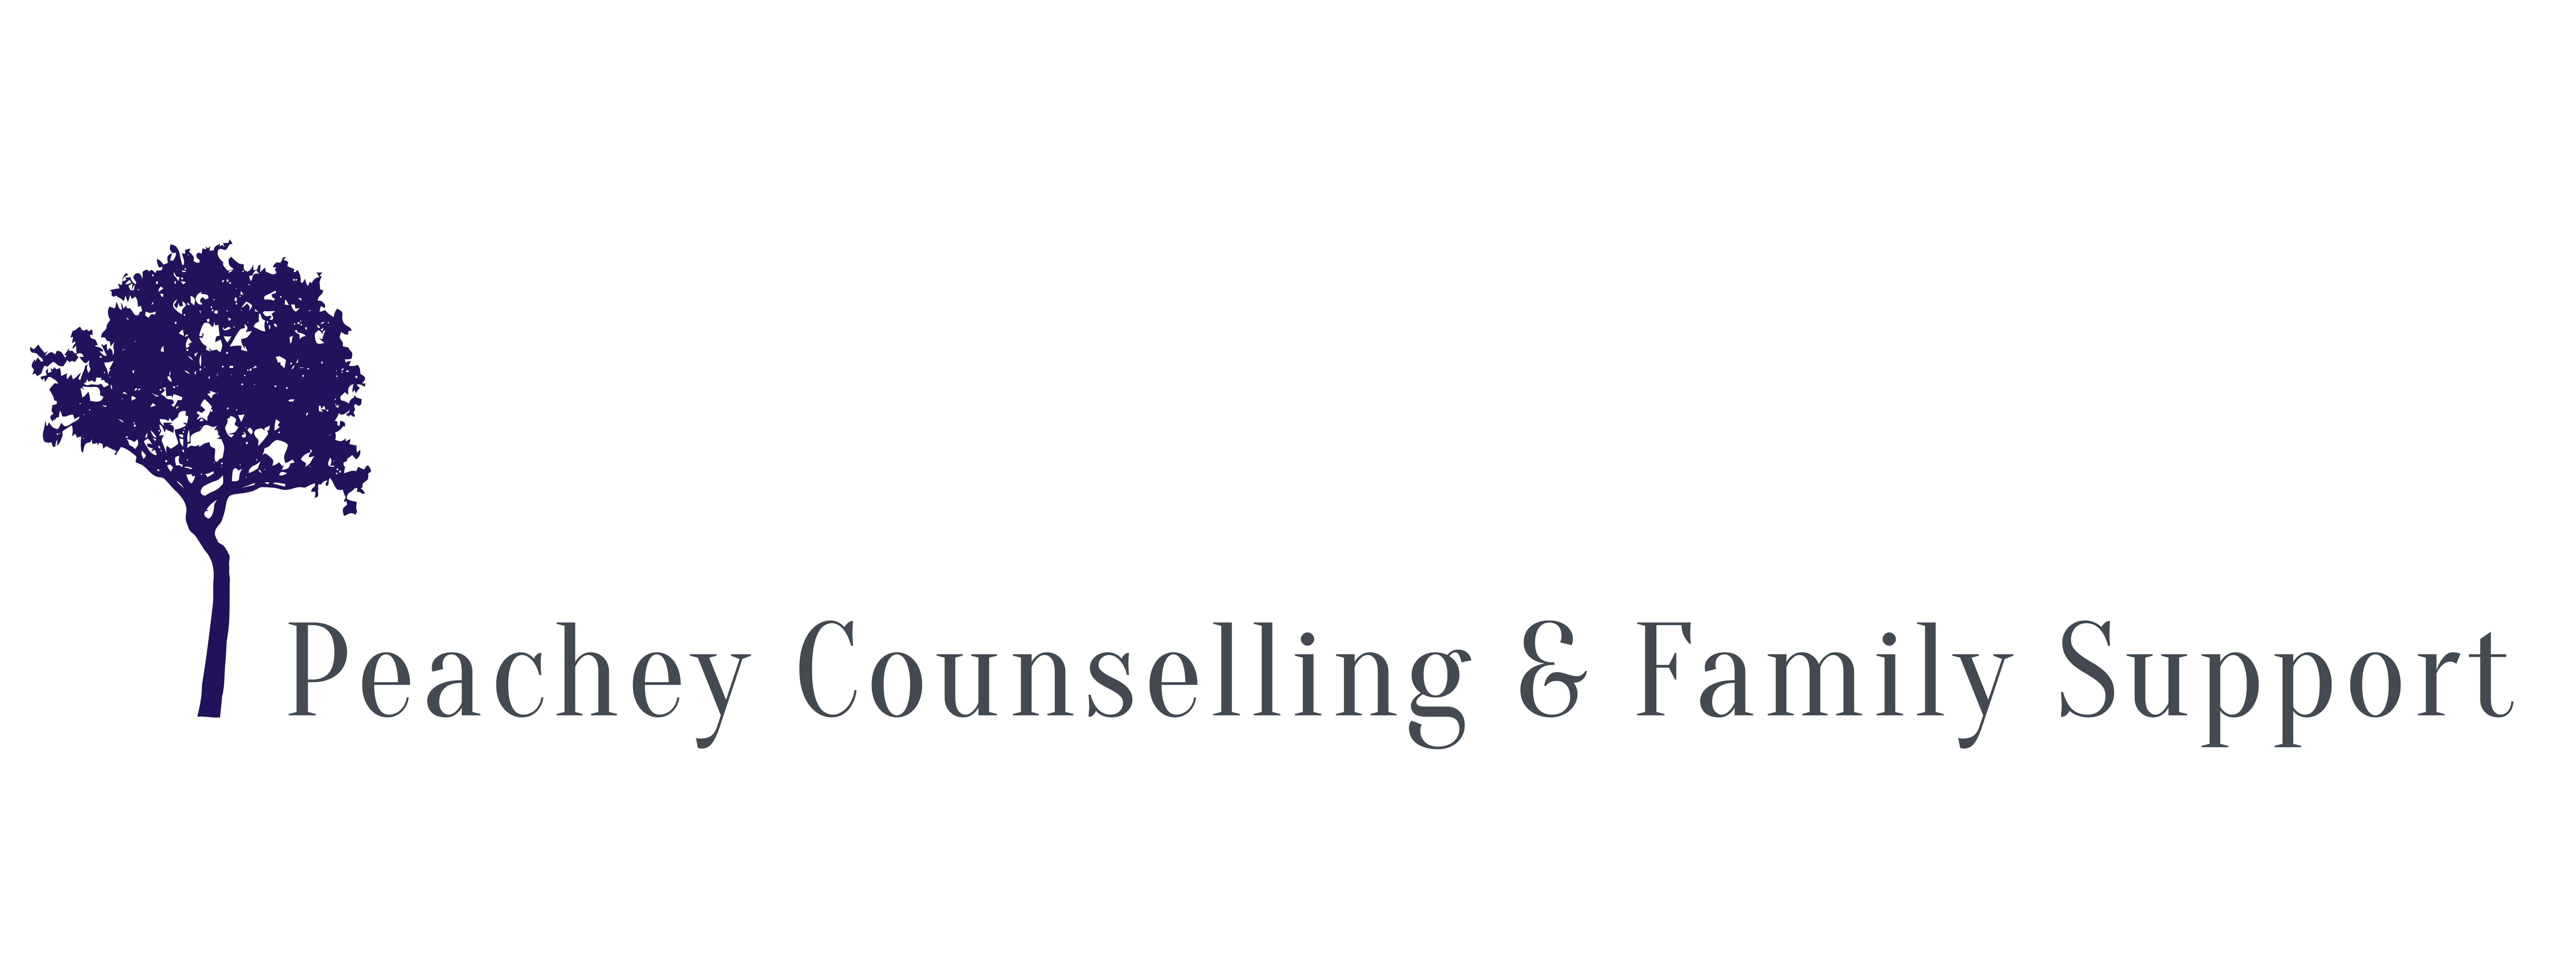 Peachey Counselling and Family Support